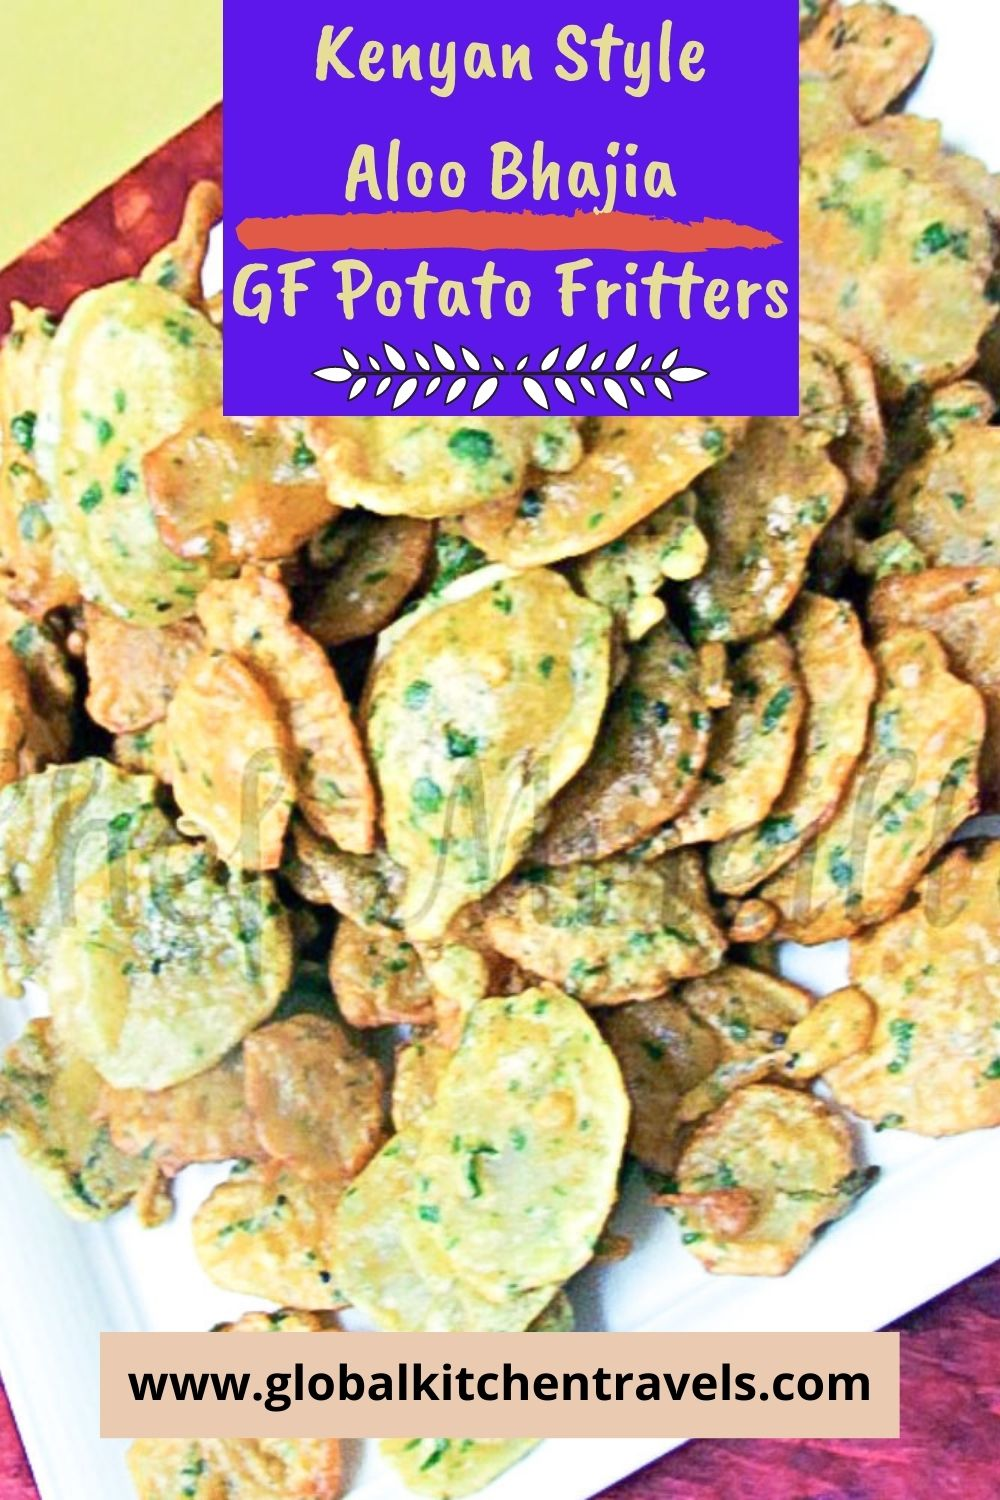 plate of gluten free potato fritters with text